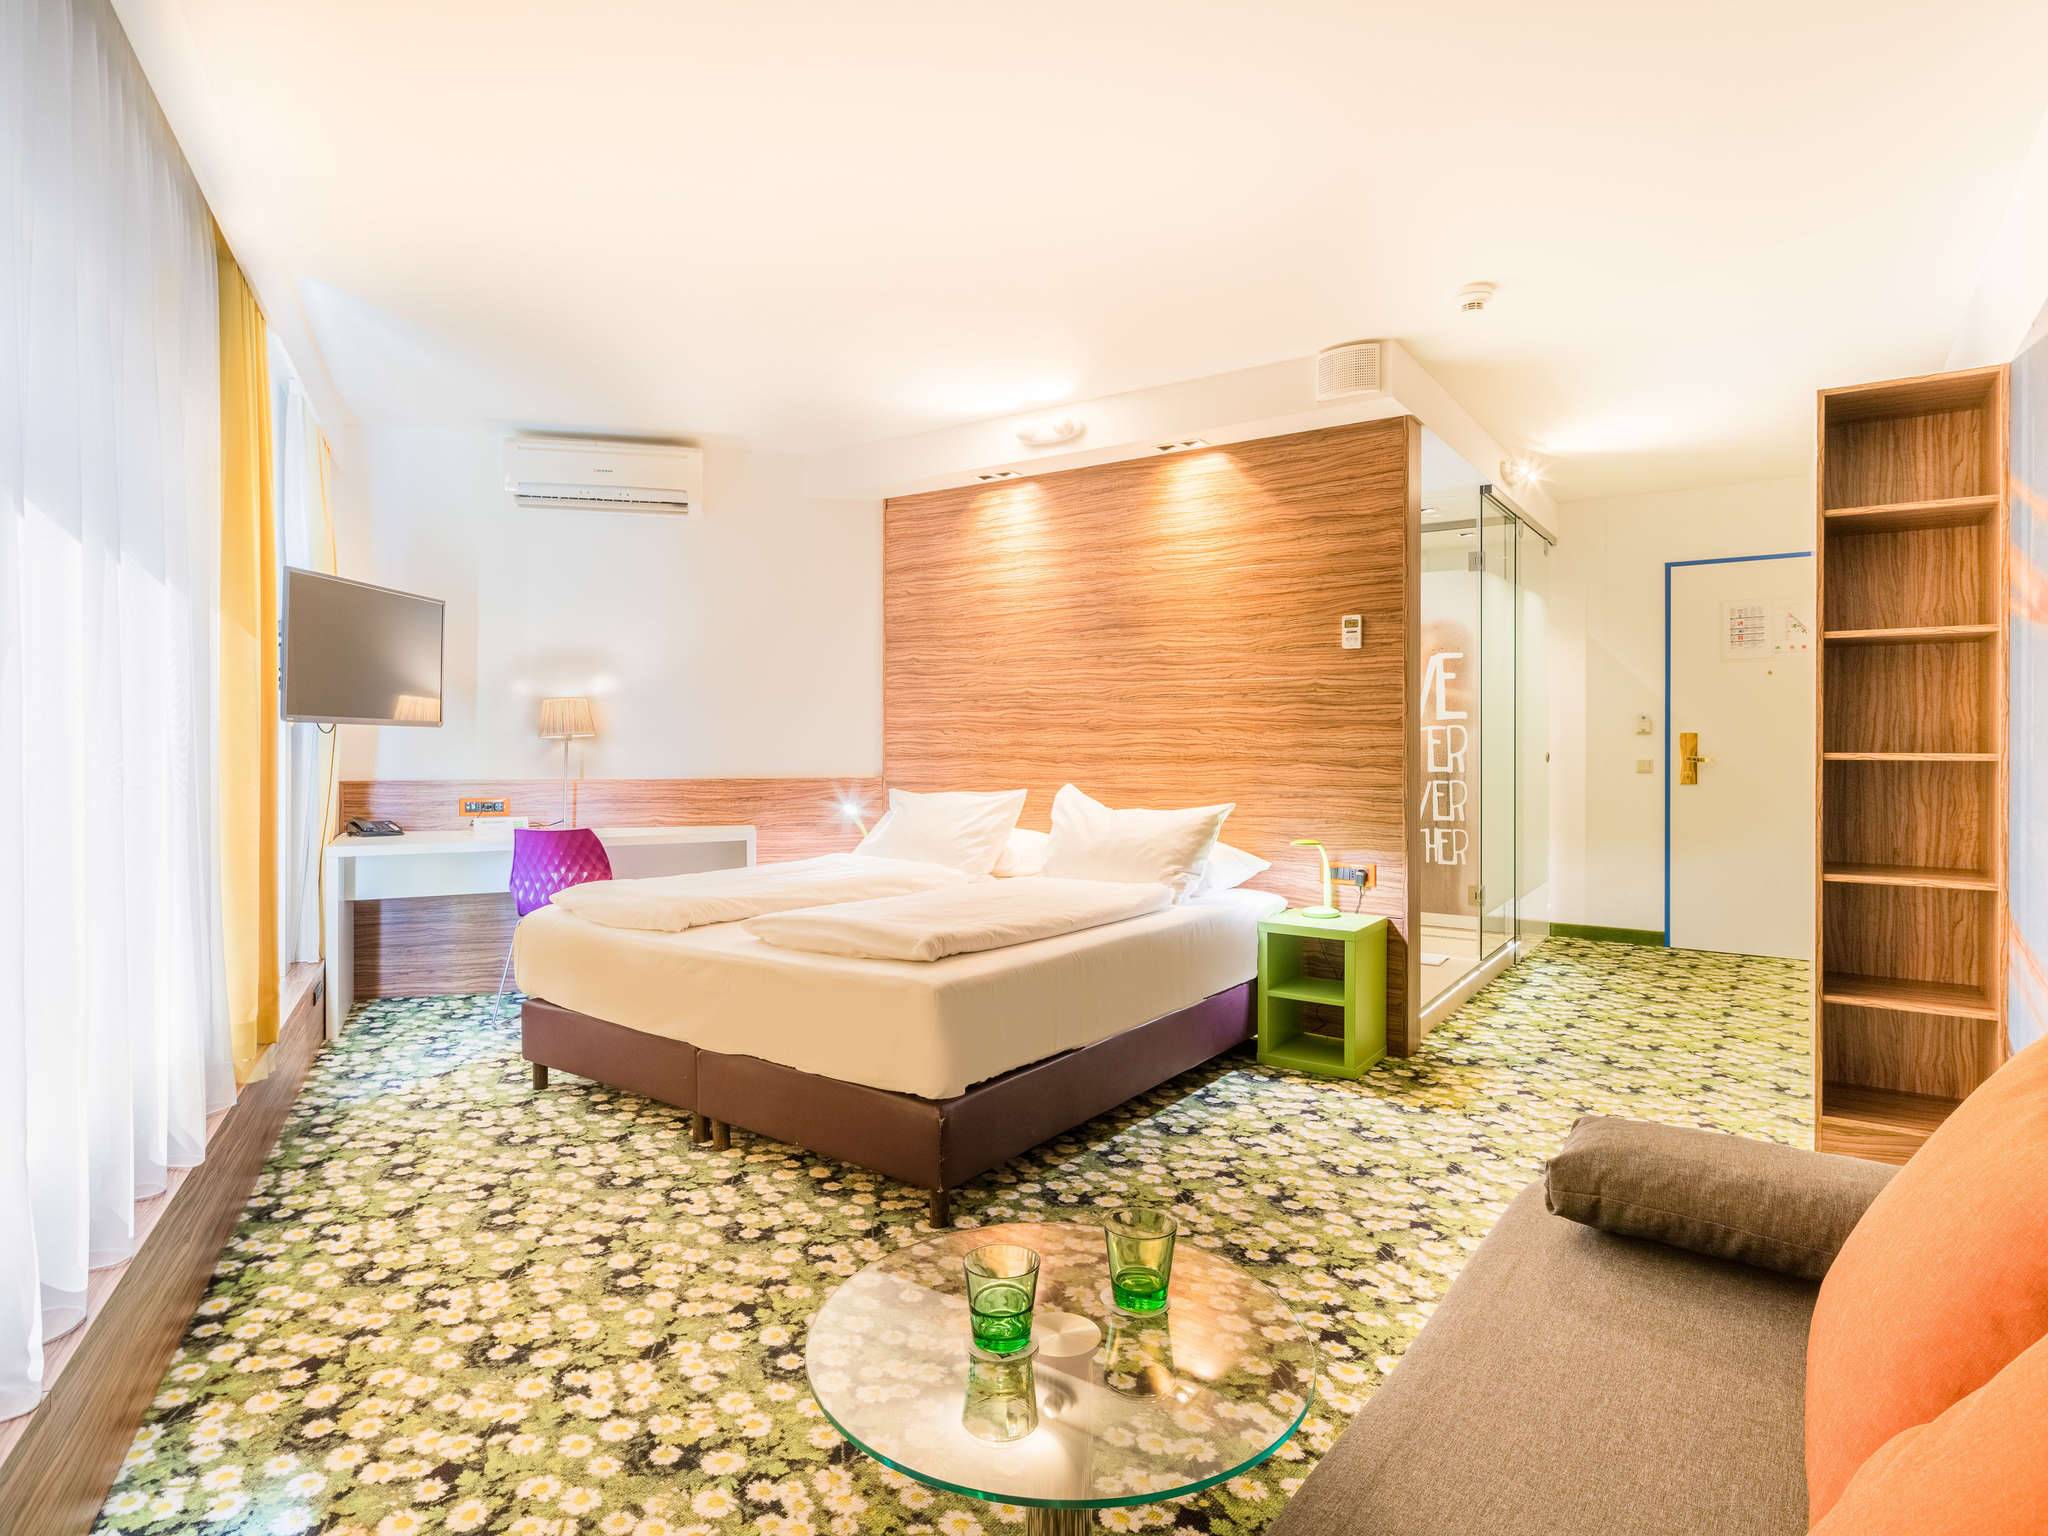 Ibis styles wien city design hotel wien accor for Design hotel wien